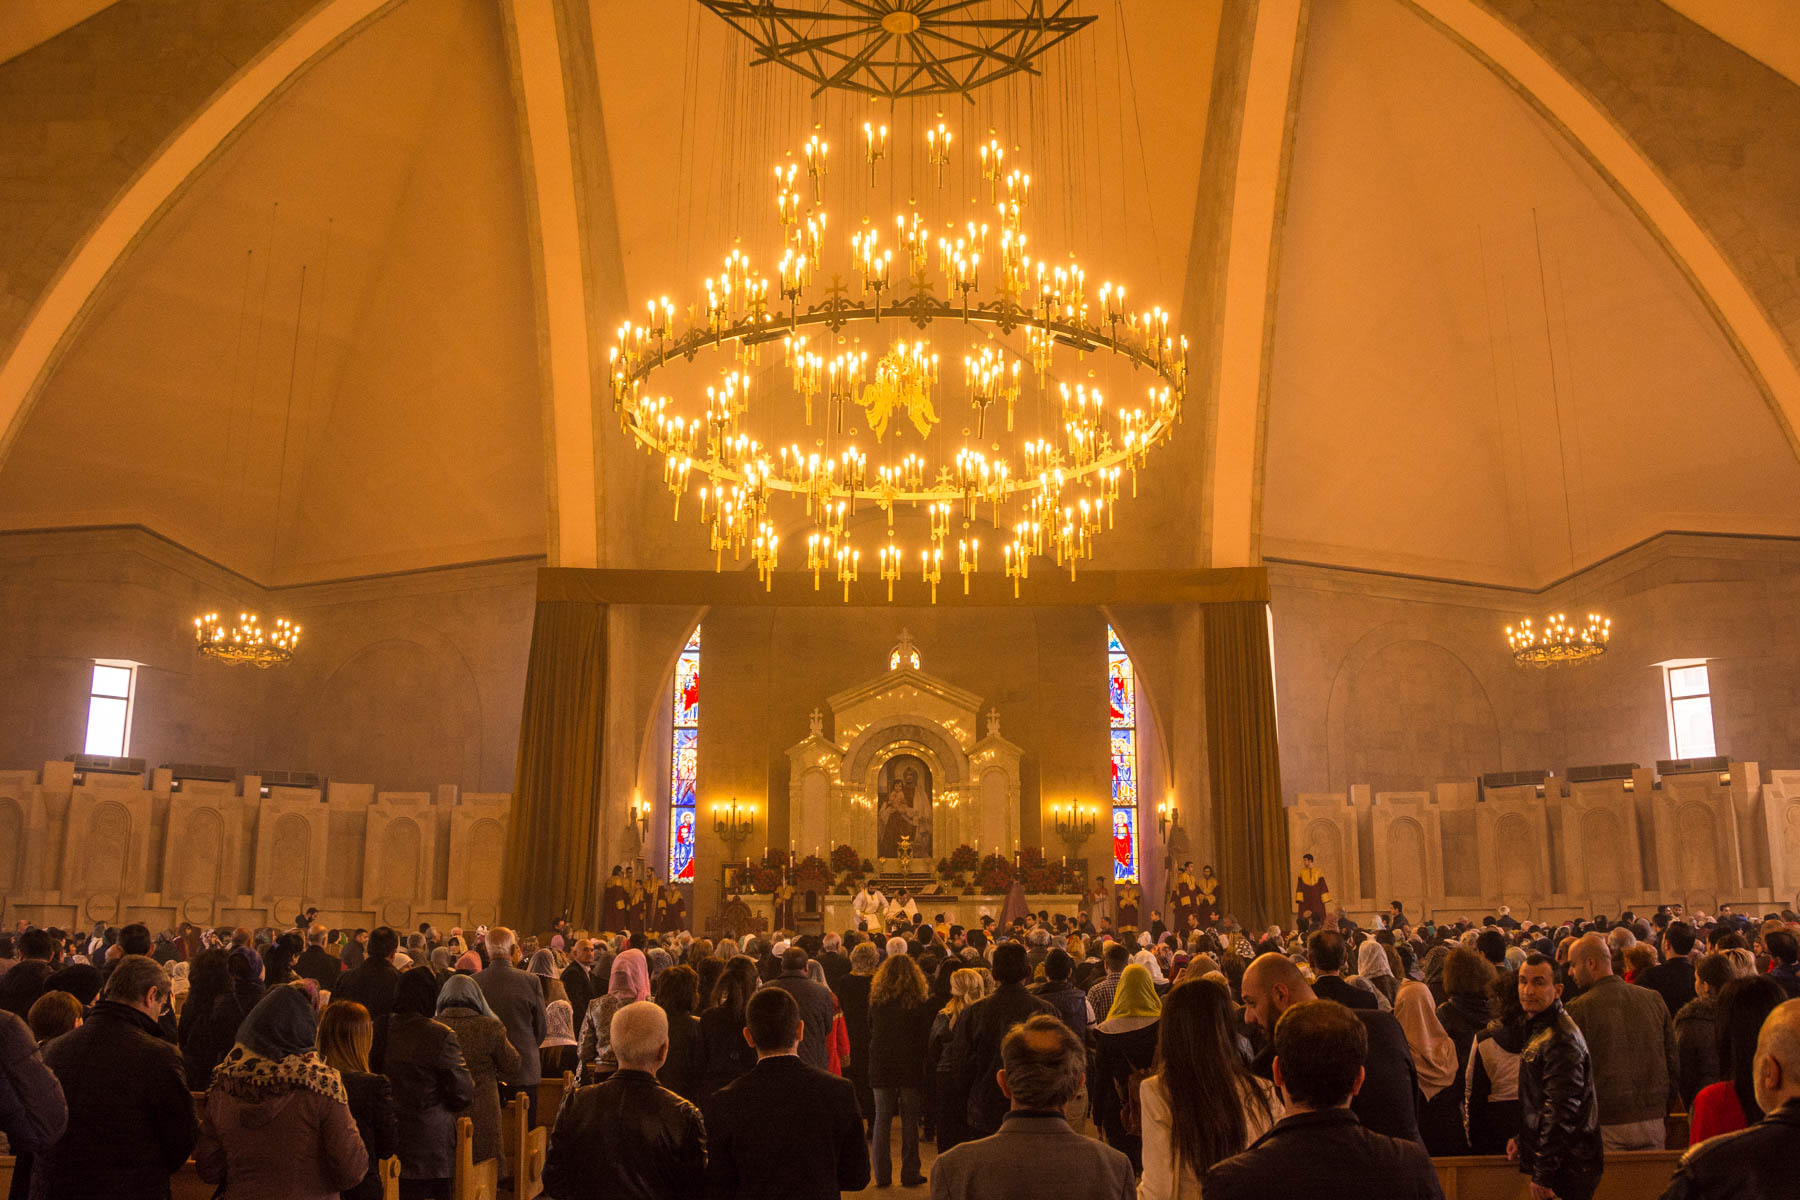 Easter in Armenia - People standing to receive communion at the Gregory the Illuminator cathedral in Yerevan to celebrate Easter in Armenia.